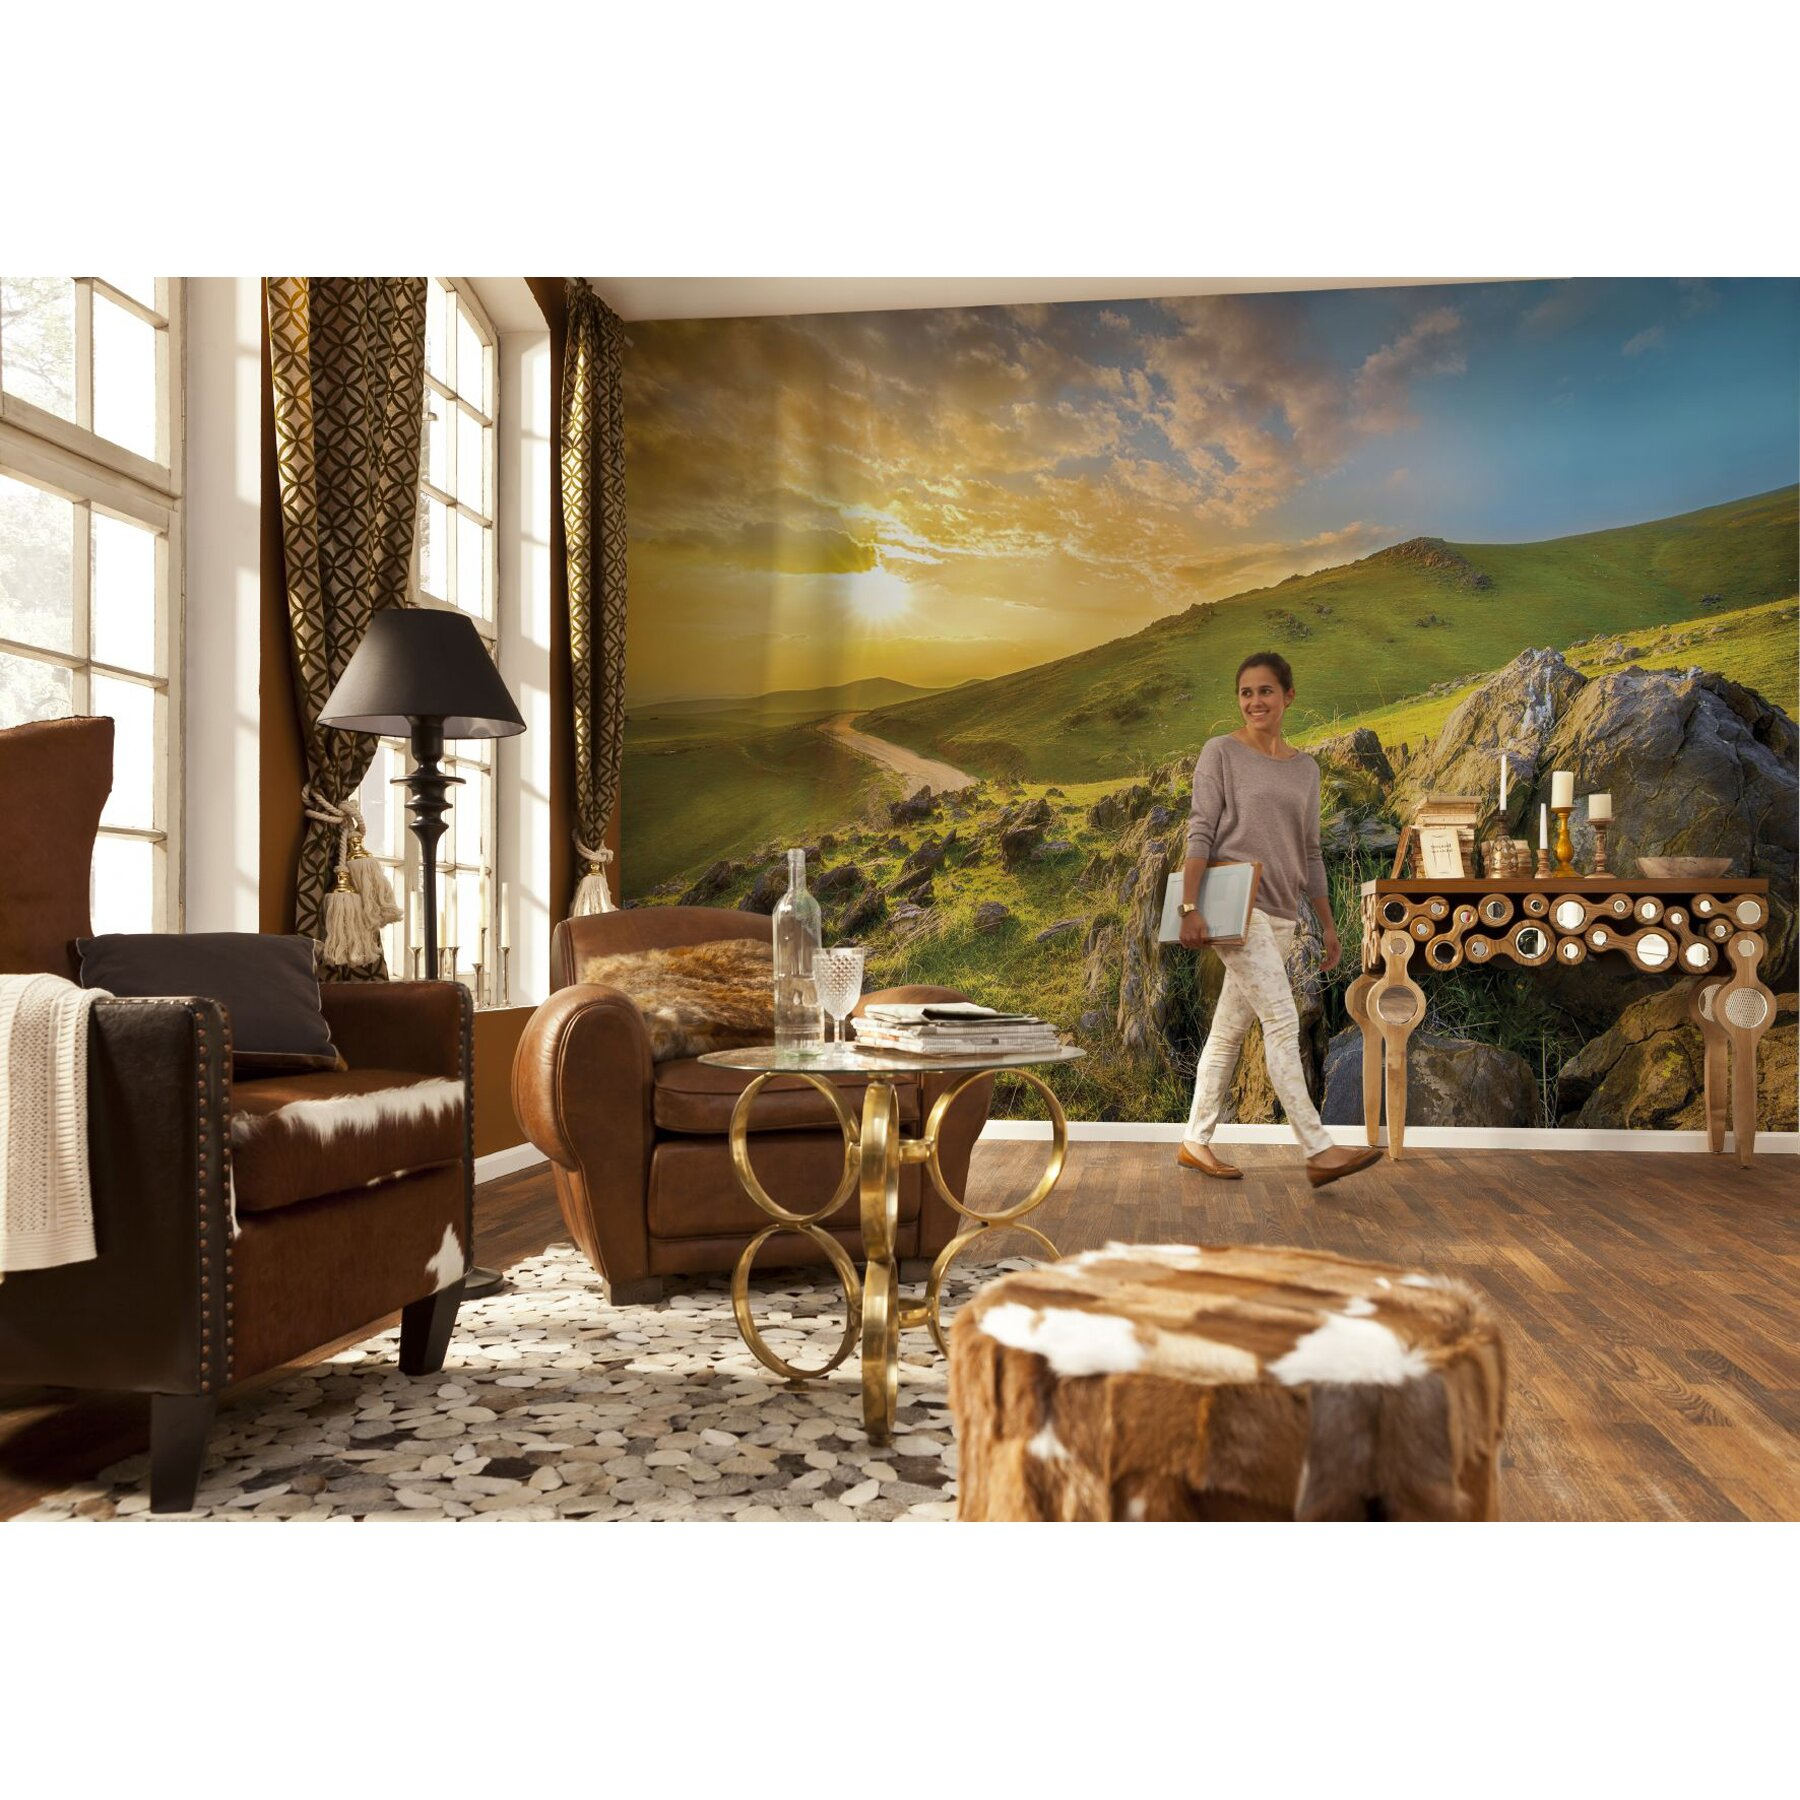 Brewster home fashions komar mountain morning wall mural for Brewster home fashions wall mural